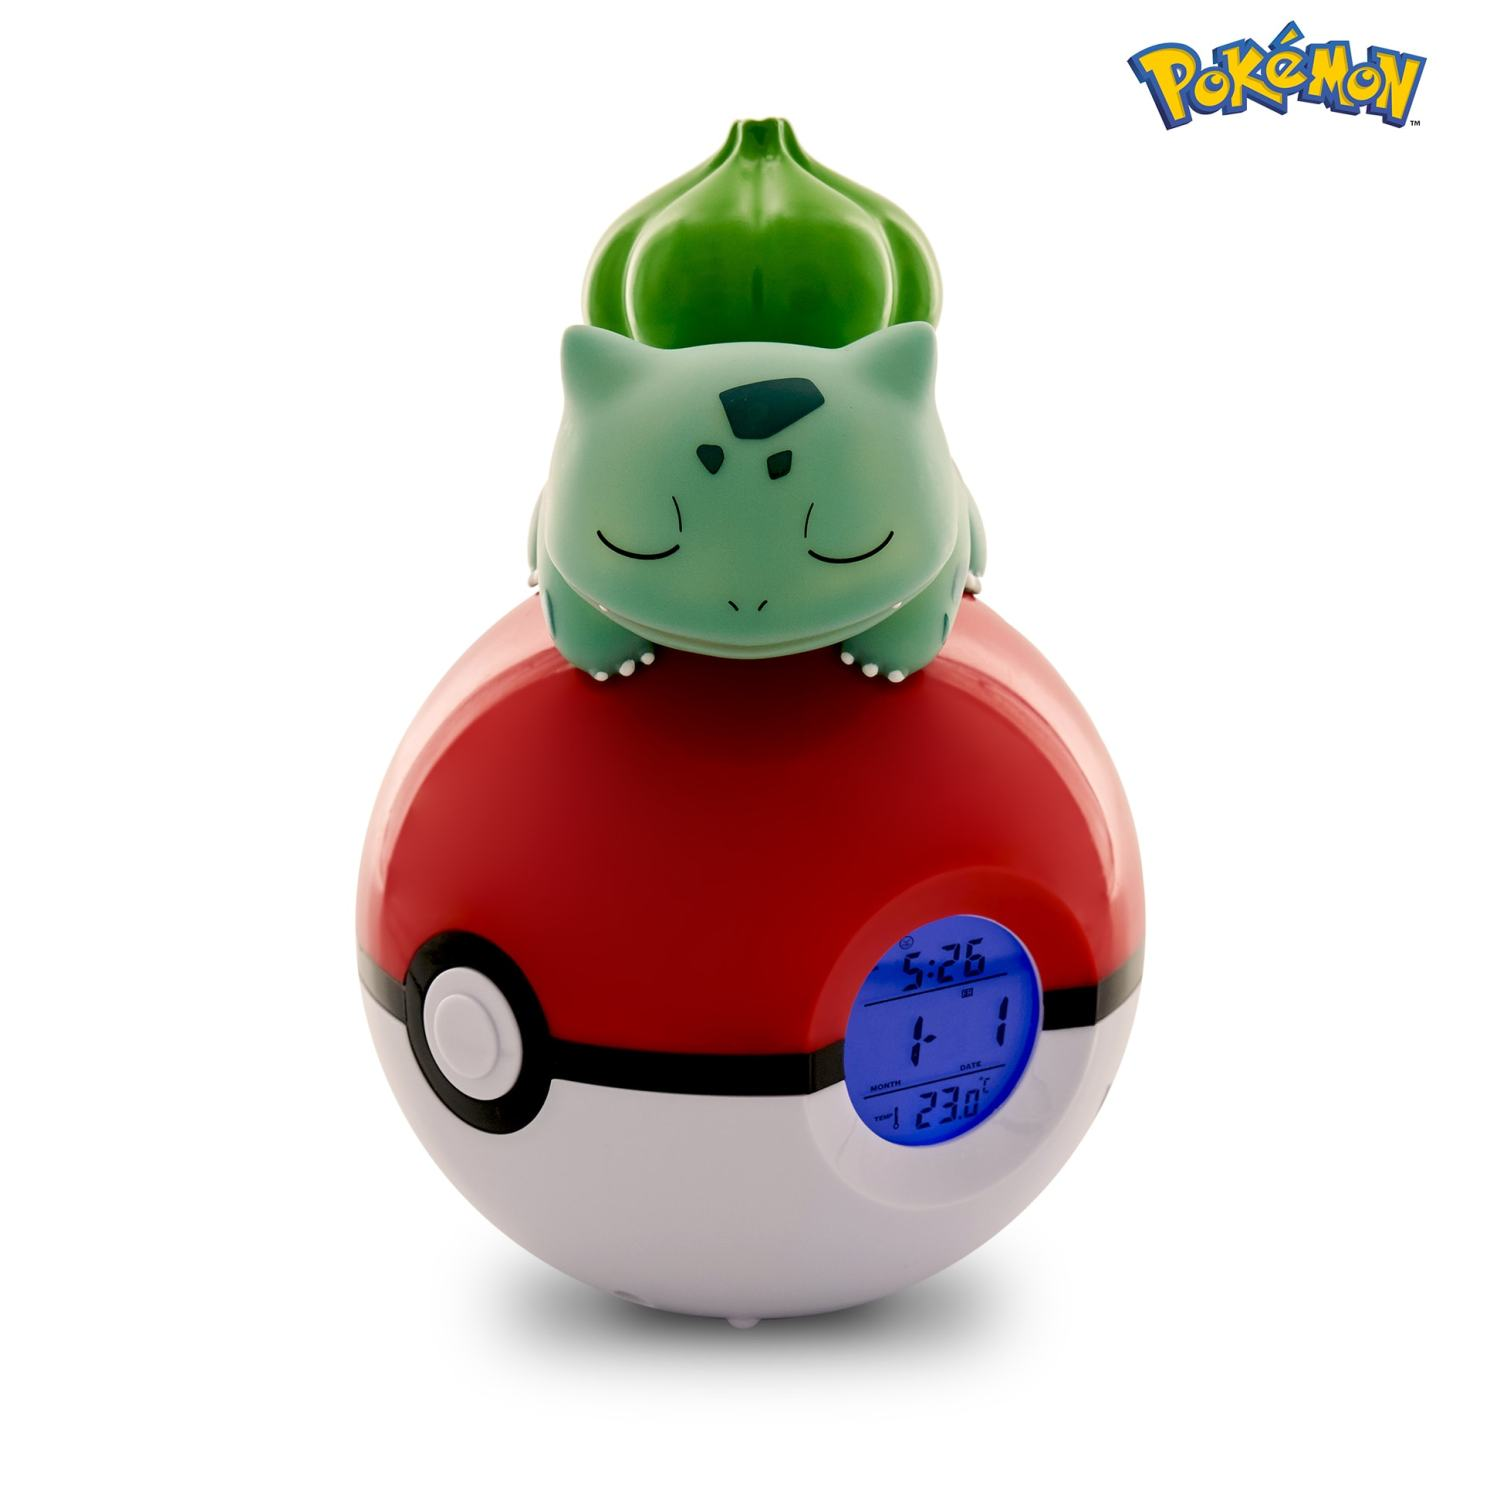 Pokémon Bulbasaur Light-up 3D figure FM Alarm Clock 1